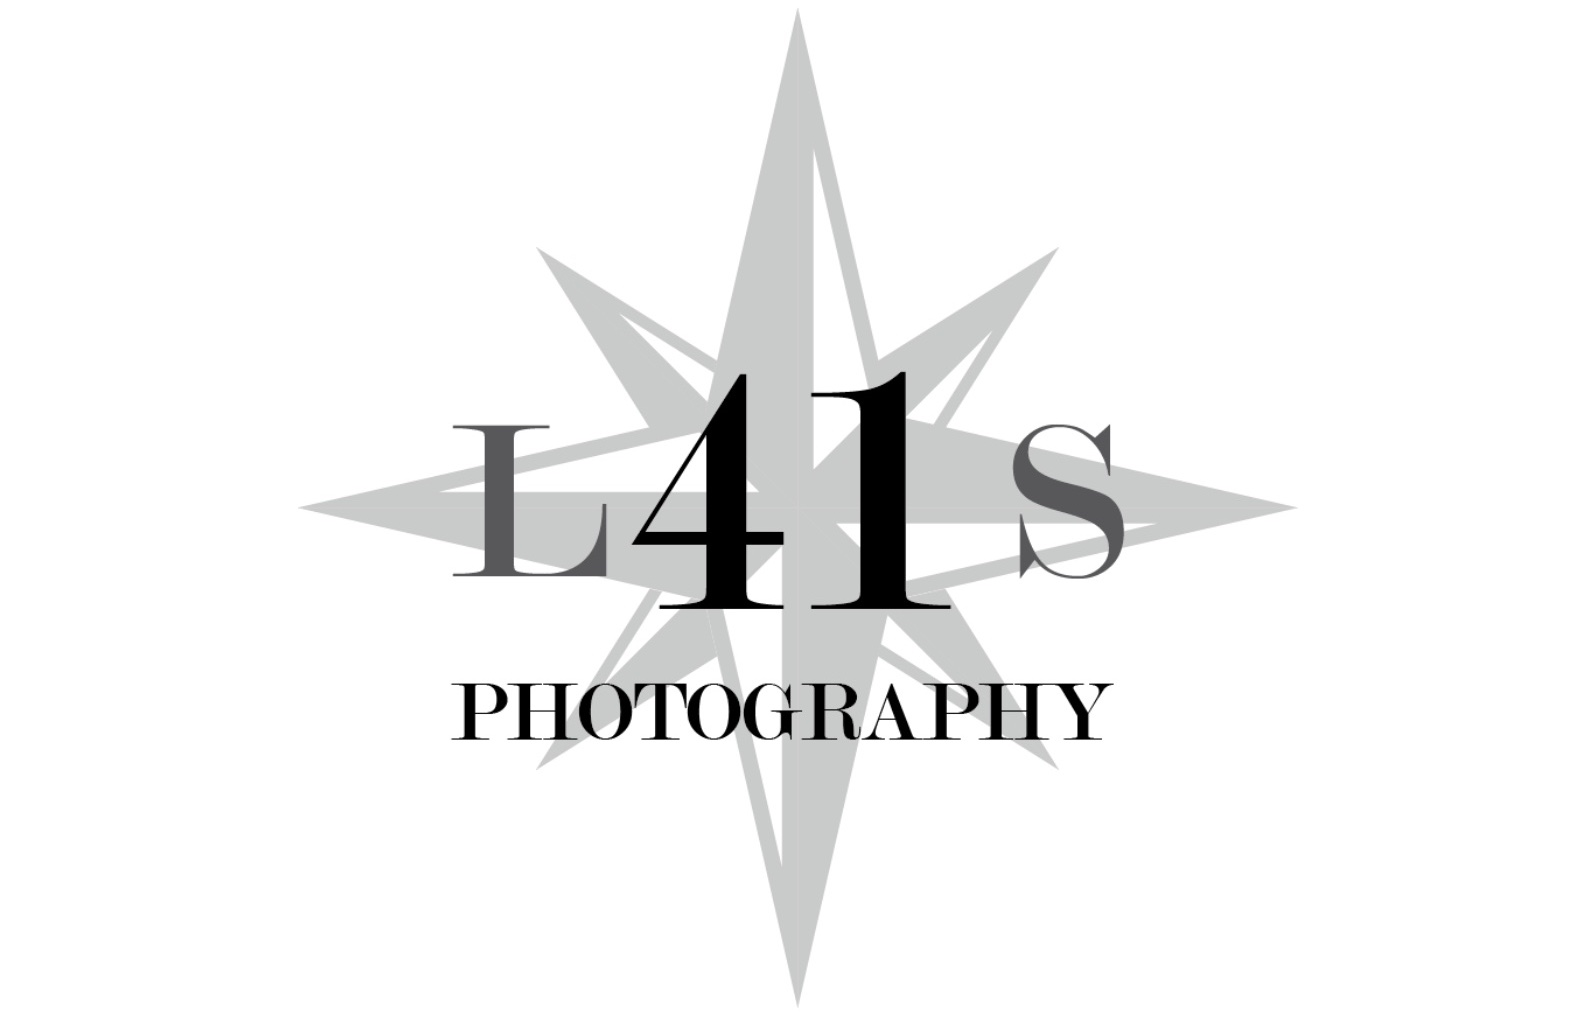 Latitude 41 Photography